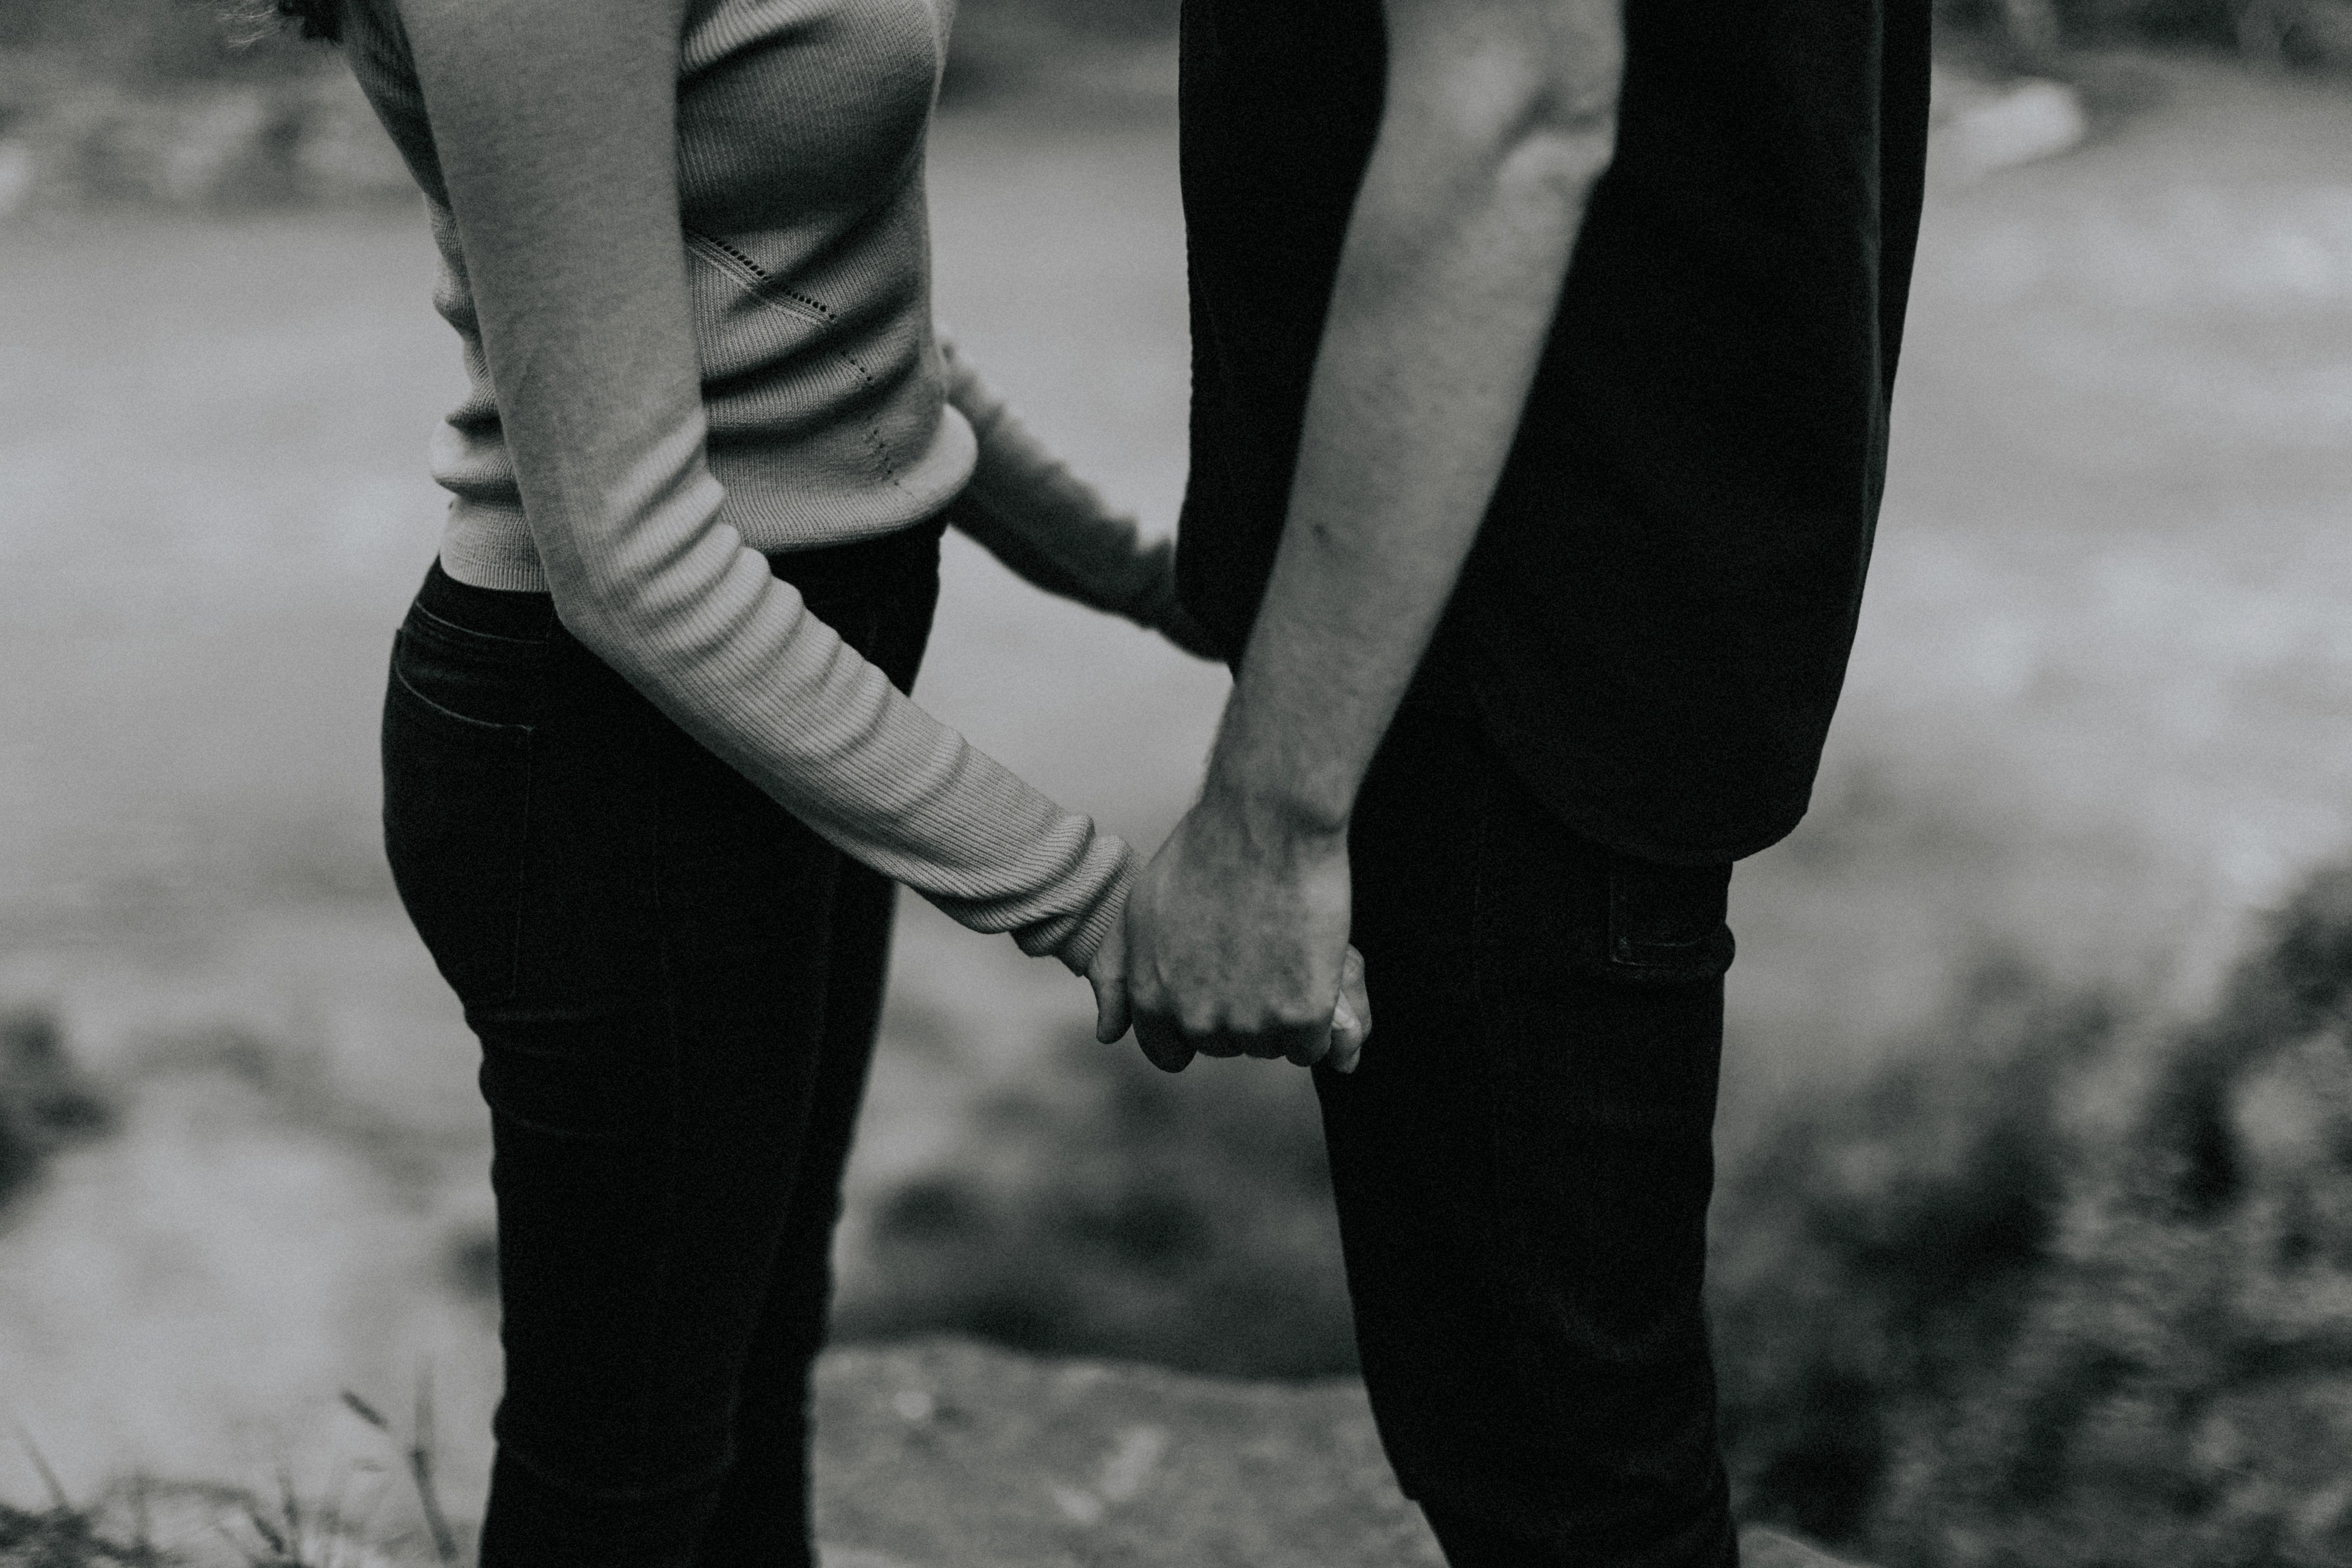 holding hands by stream